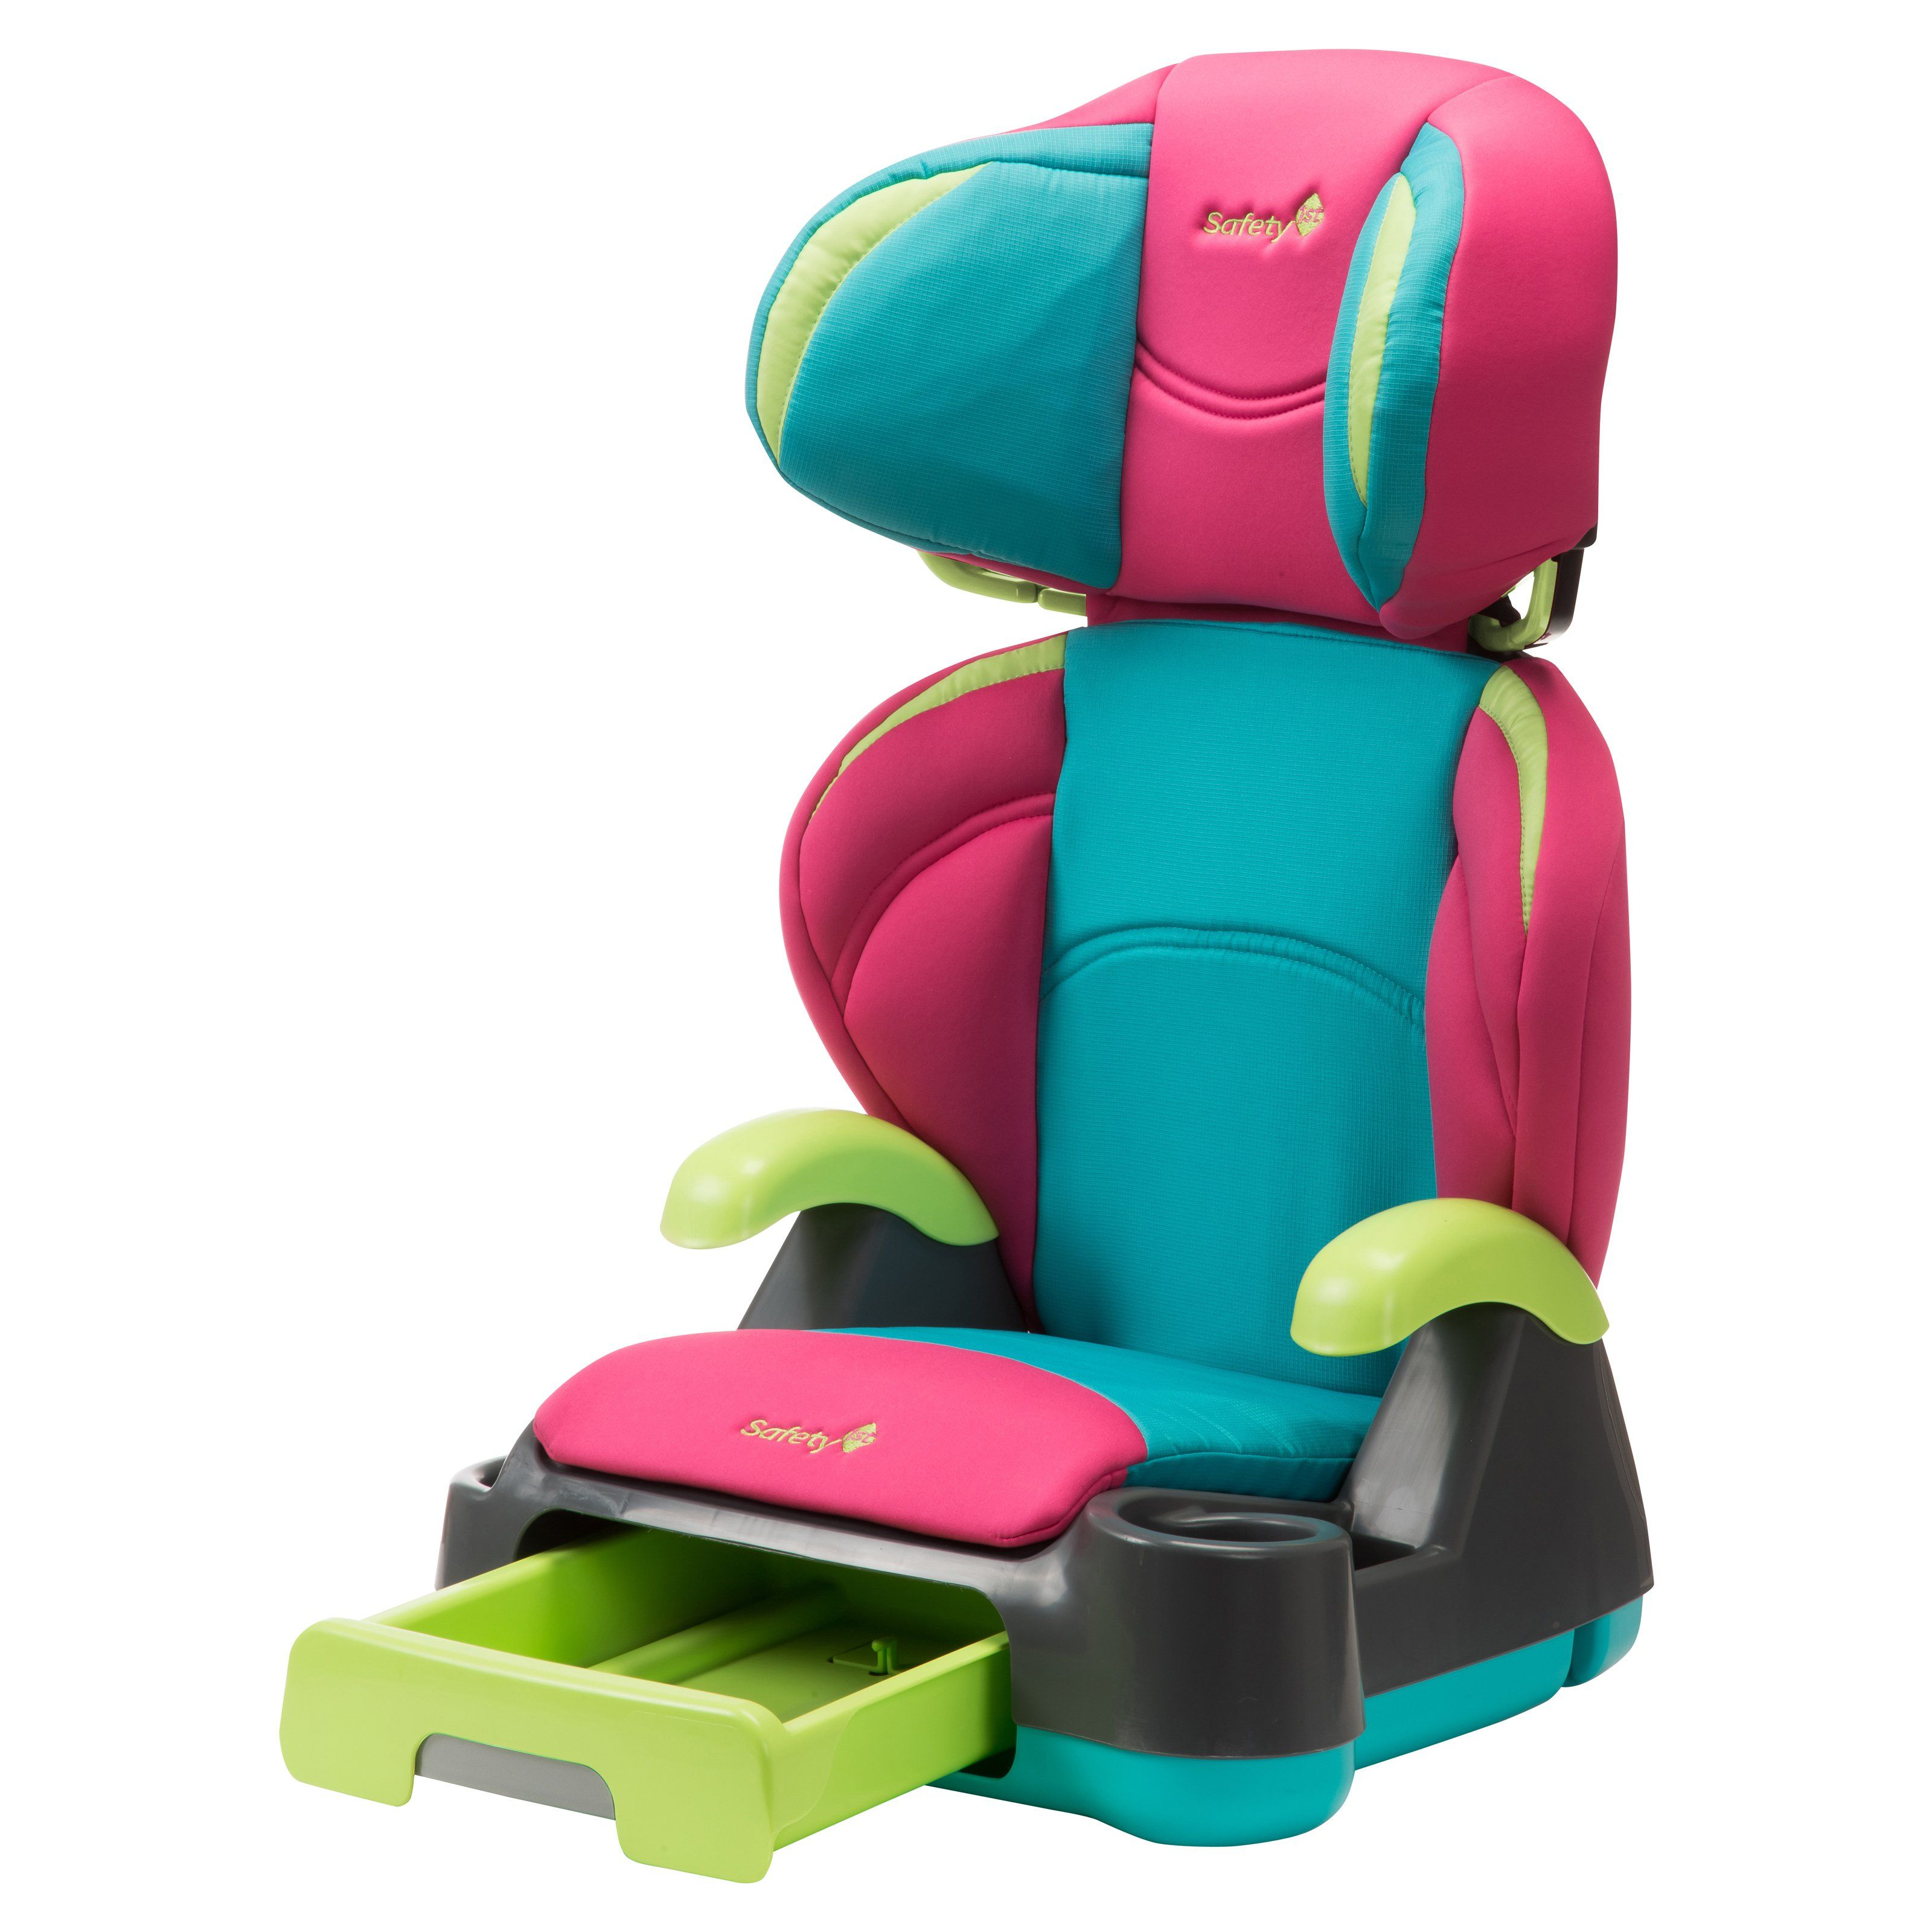 Safety 1st Store n Go Backed Booster Seat BC069CJR